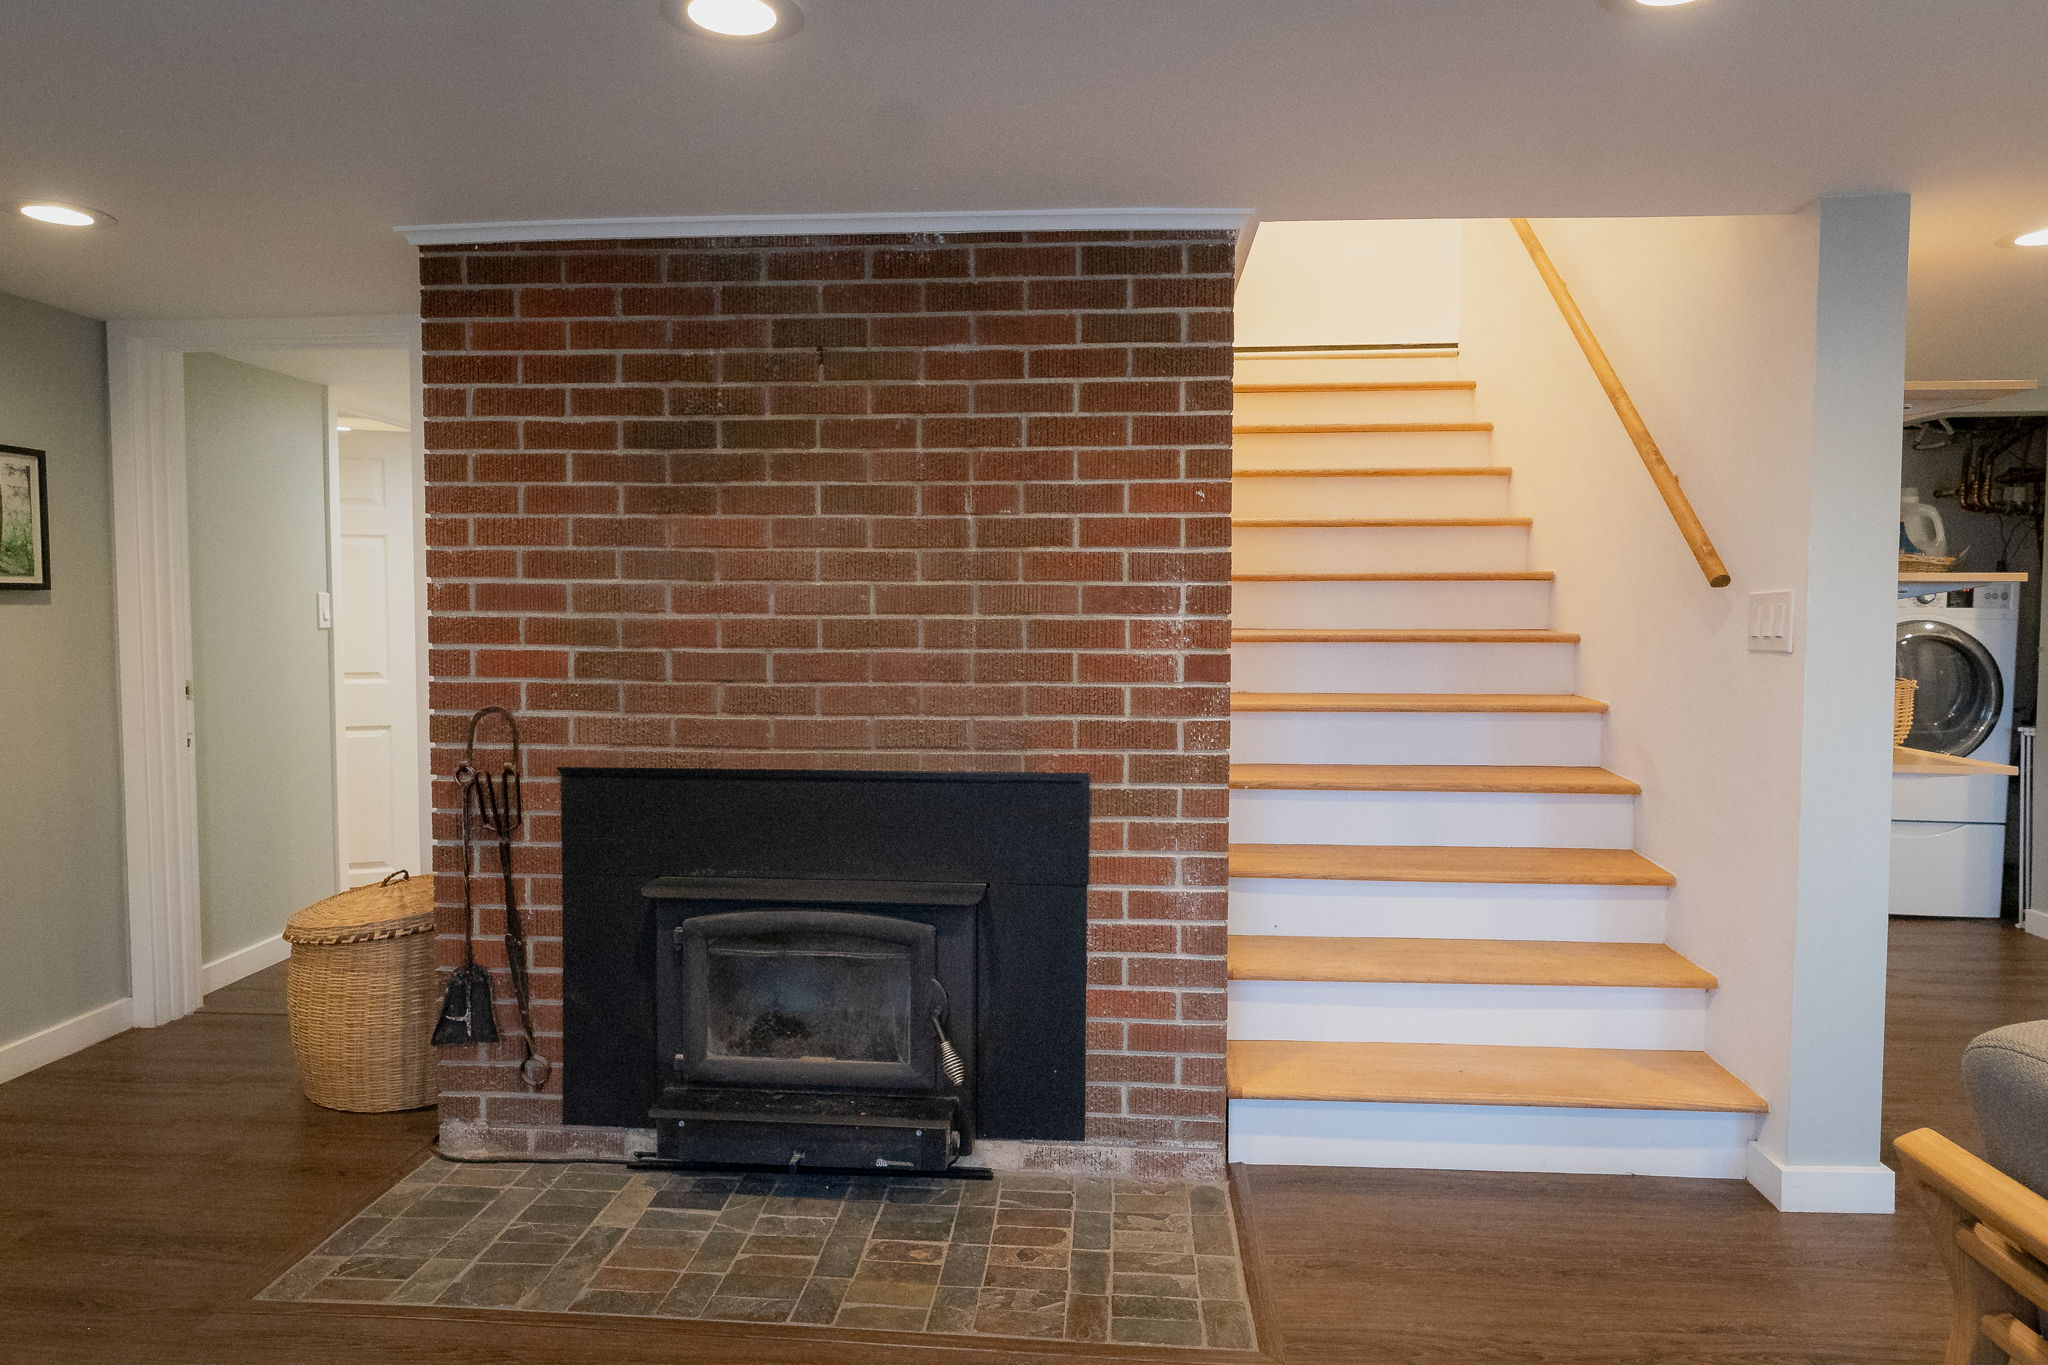 Beautiful brick fireplace with new energy efficient wood insert and chimney liner installed 2014.  Keeps home so warm and cozy.